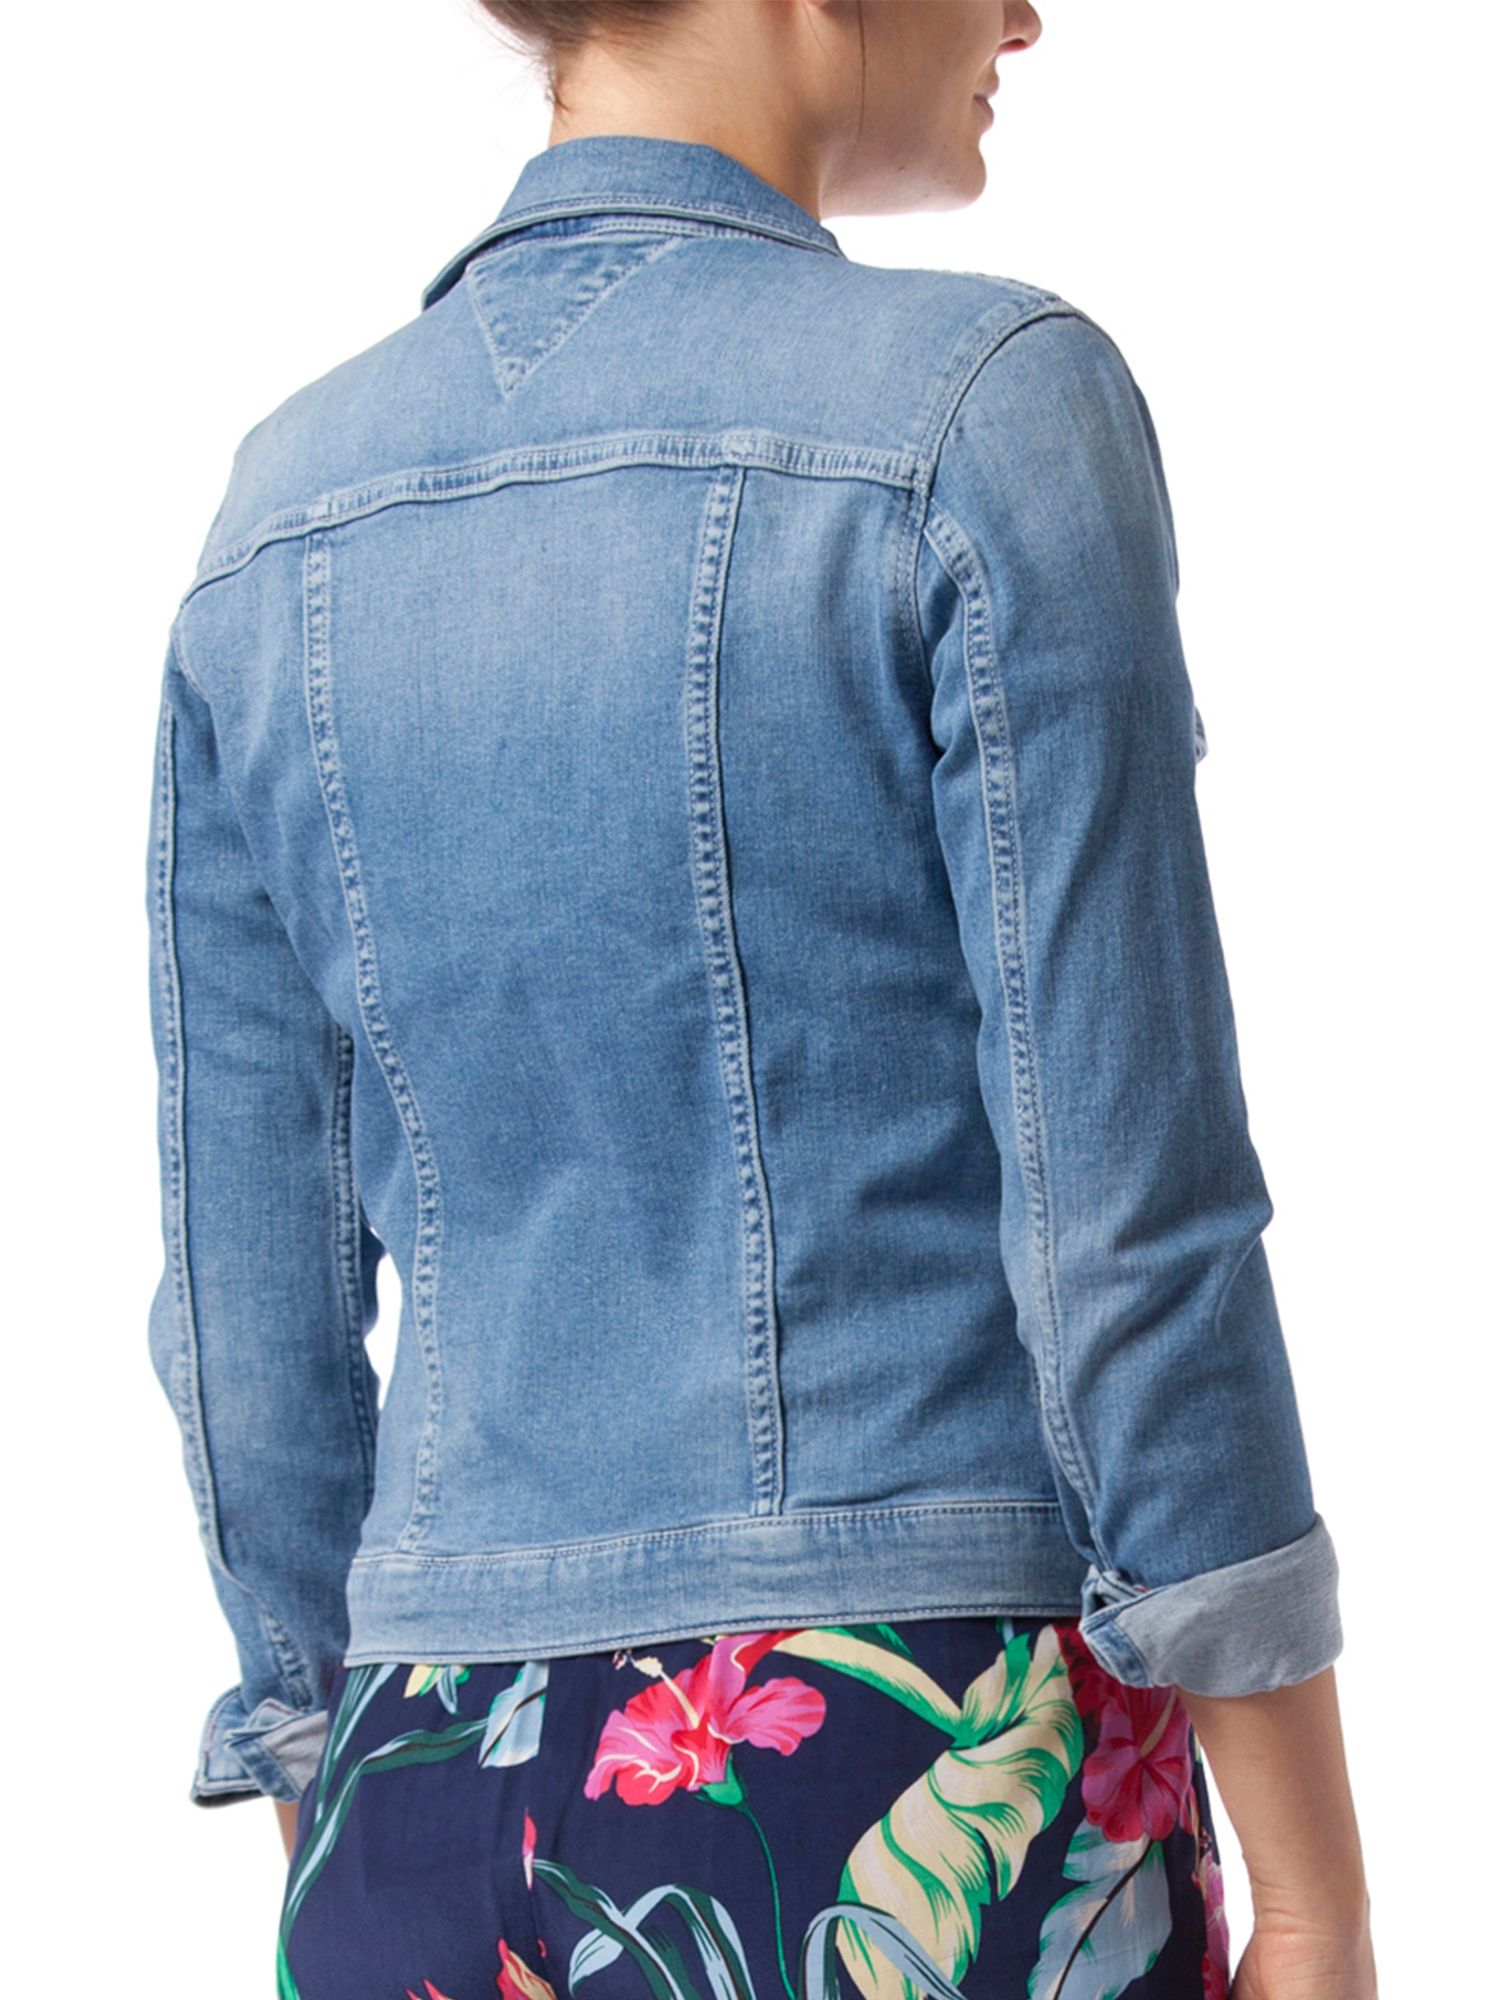 Tommy hilfiger Verona Jean Jacket in Blue | Lyst